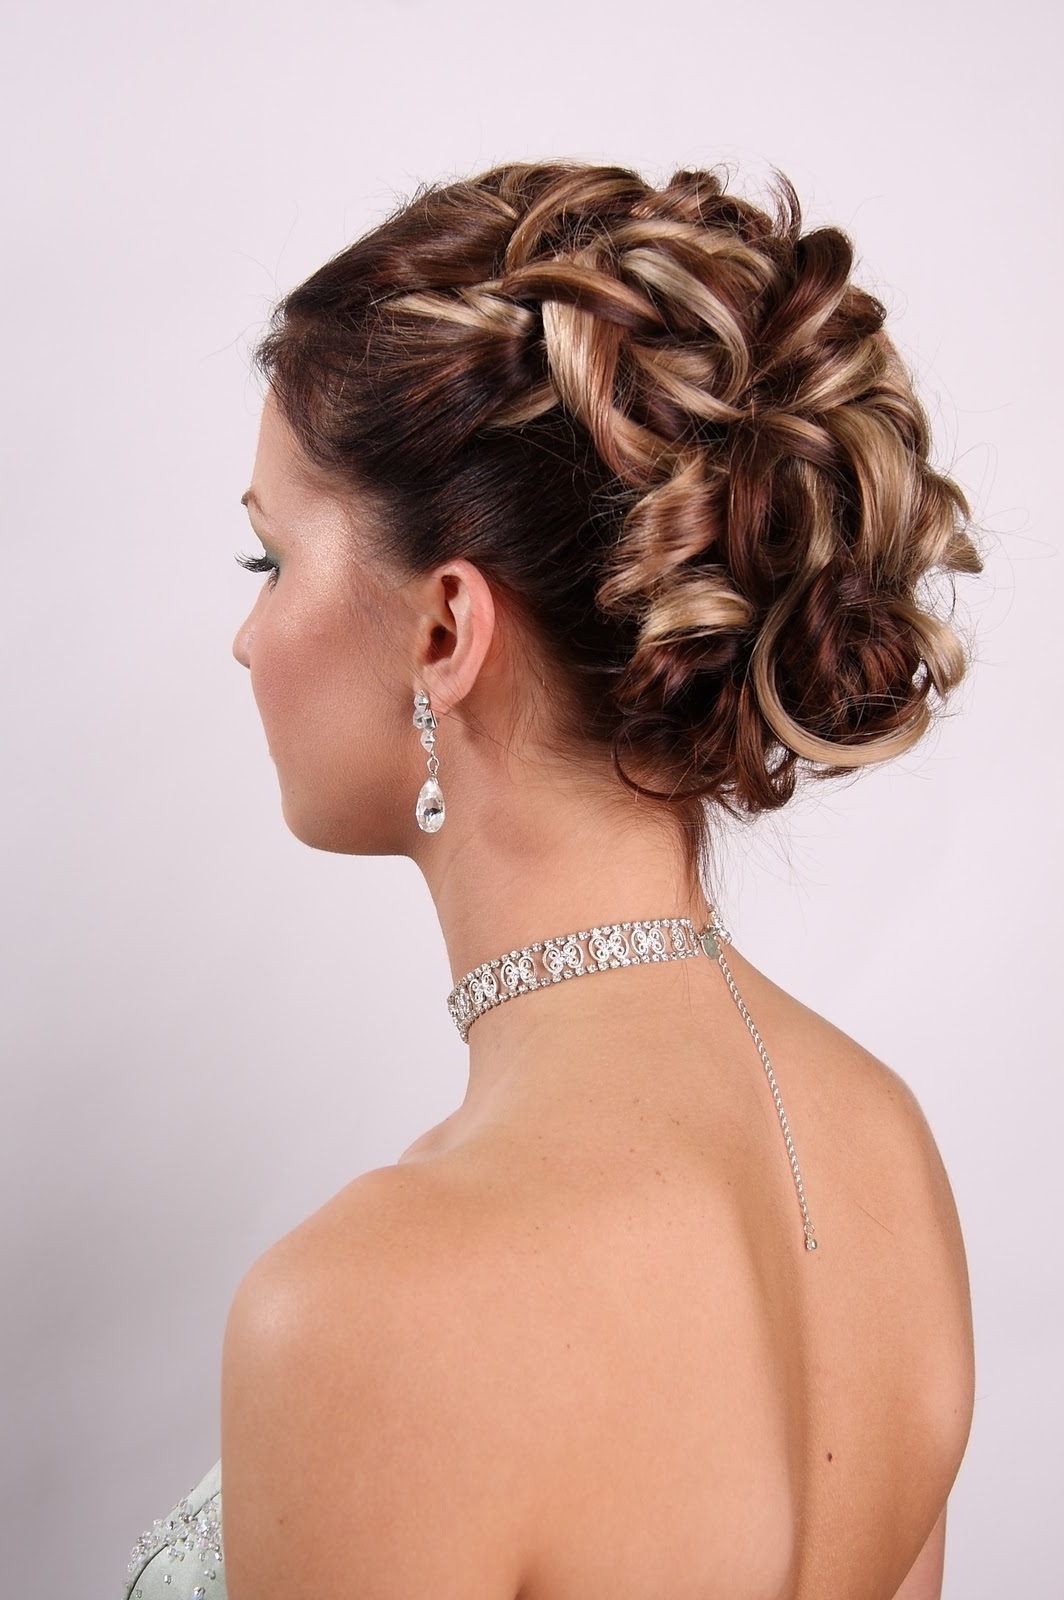 20 Of The Most Beautiful Updo Haircuts For Gorgeous Women – Haircuts In Well Known Classic Wedding Hairstyles For Medium Length Hair (View 2 of 15)